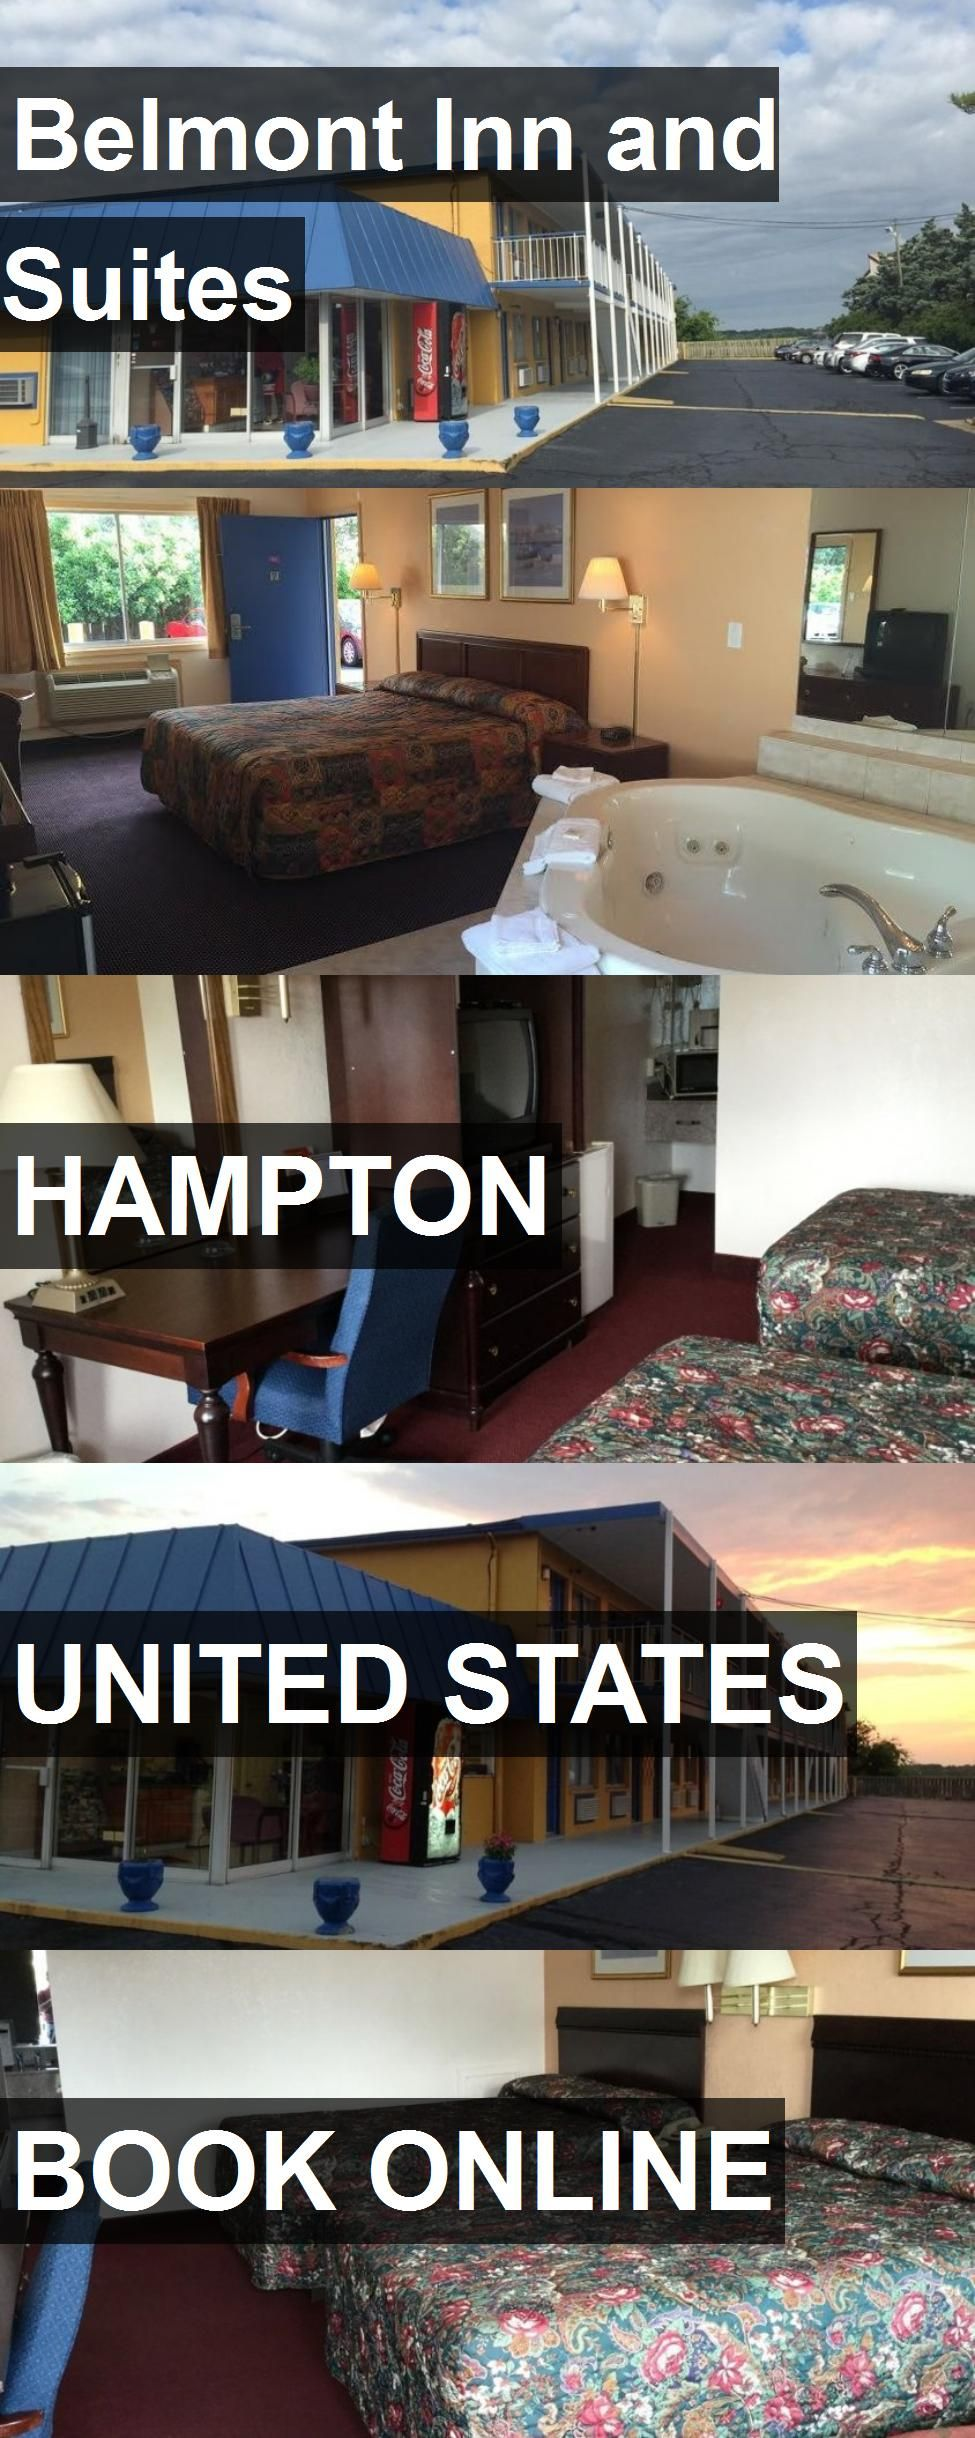 Hotel Belmont Inn and Suites in Hampton, United States